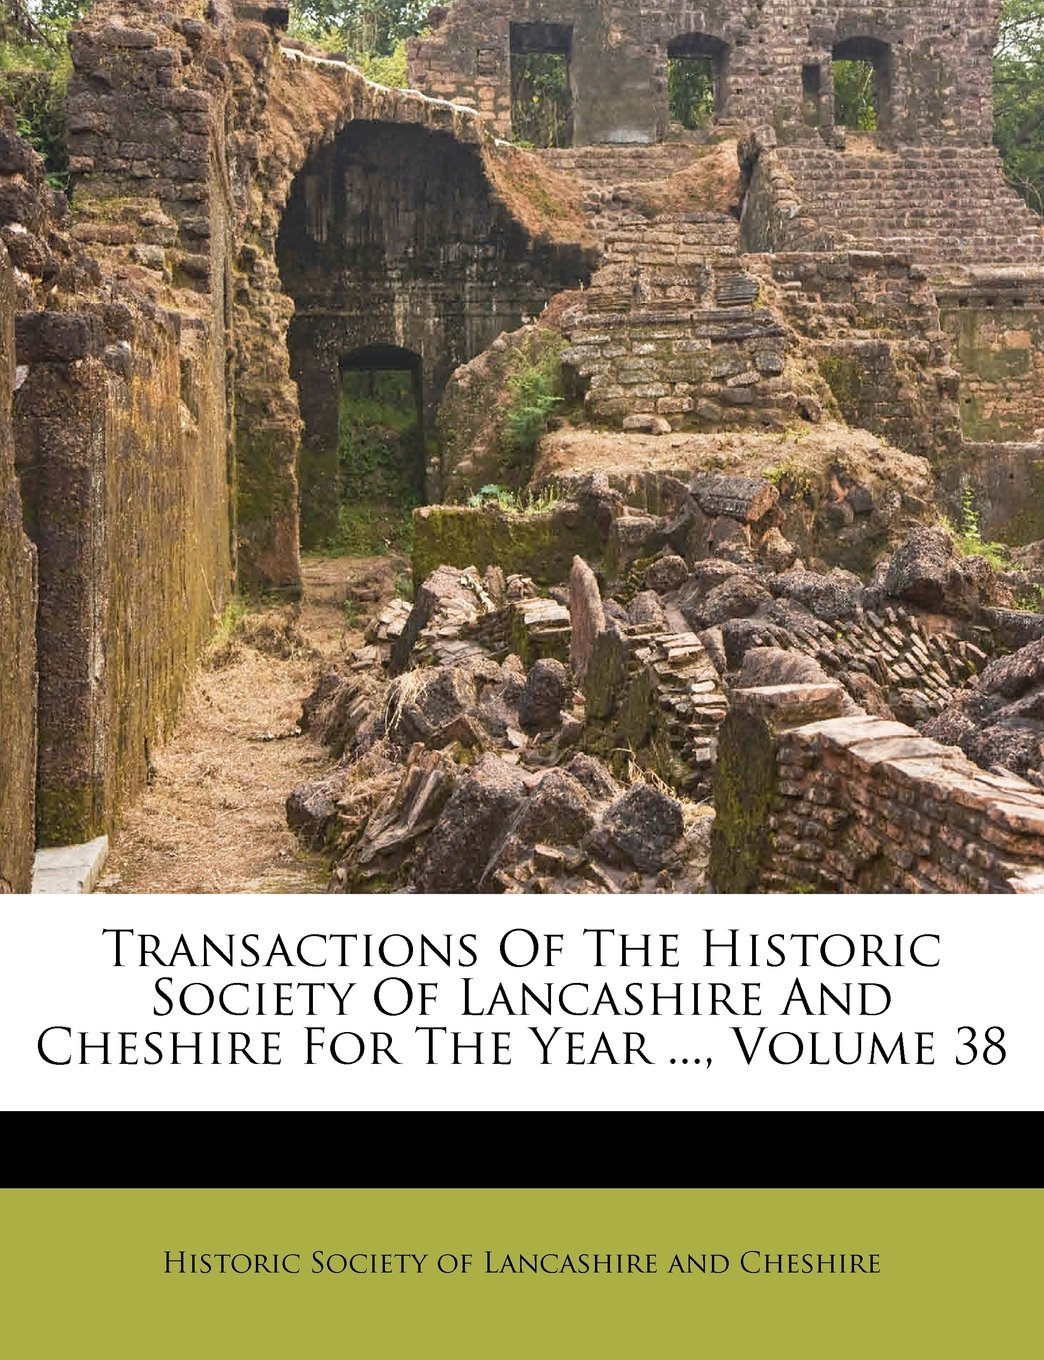 Transactions Of The Historic Society Of Lancashire And Cheshire For The Year ..., Volume 38 ebook